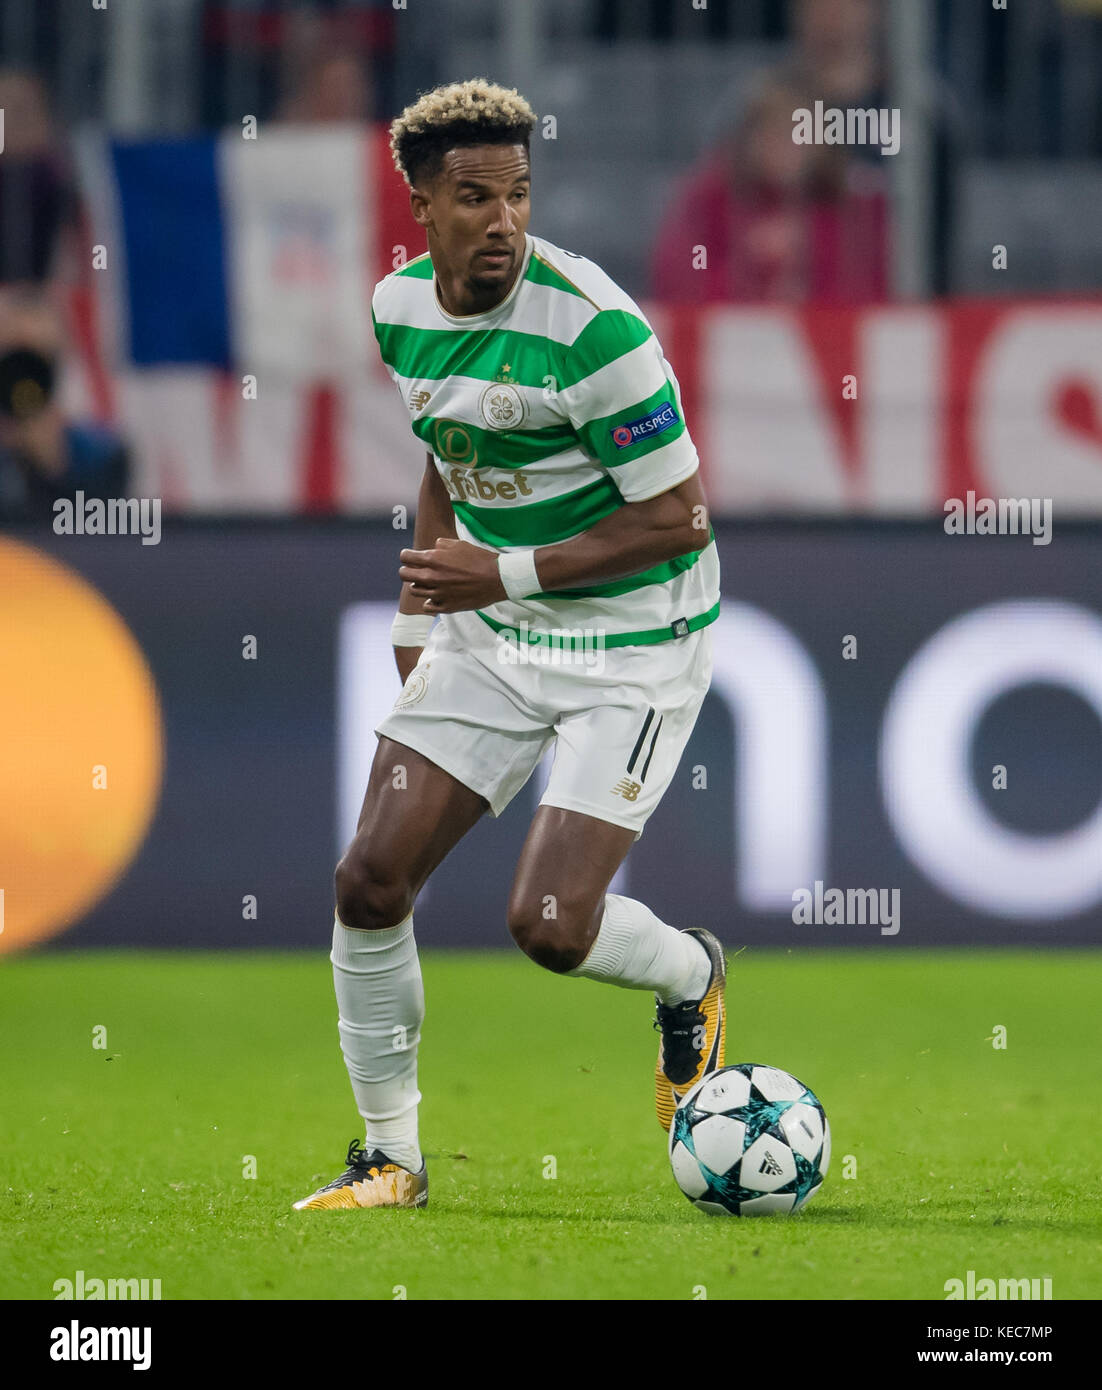 Munich, Germany. 18th Oct, 2017. Glasgow's Scott Sinclair in action during the UEFA Champions League soccer - Stock Image